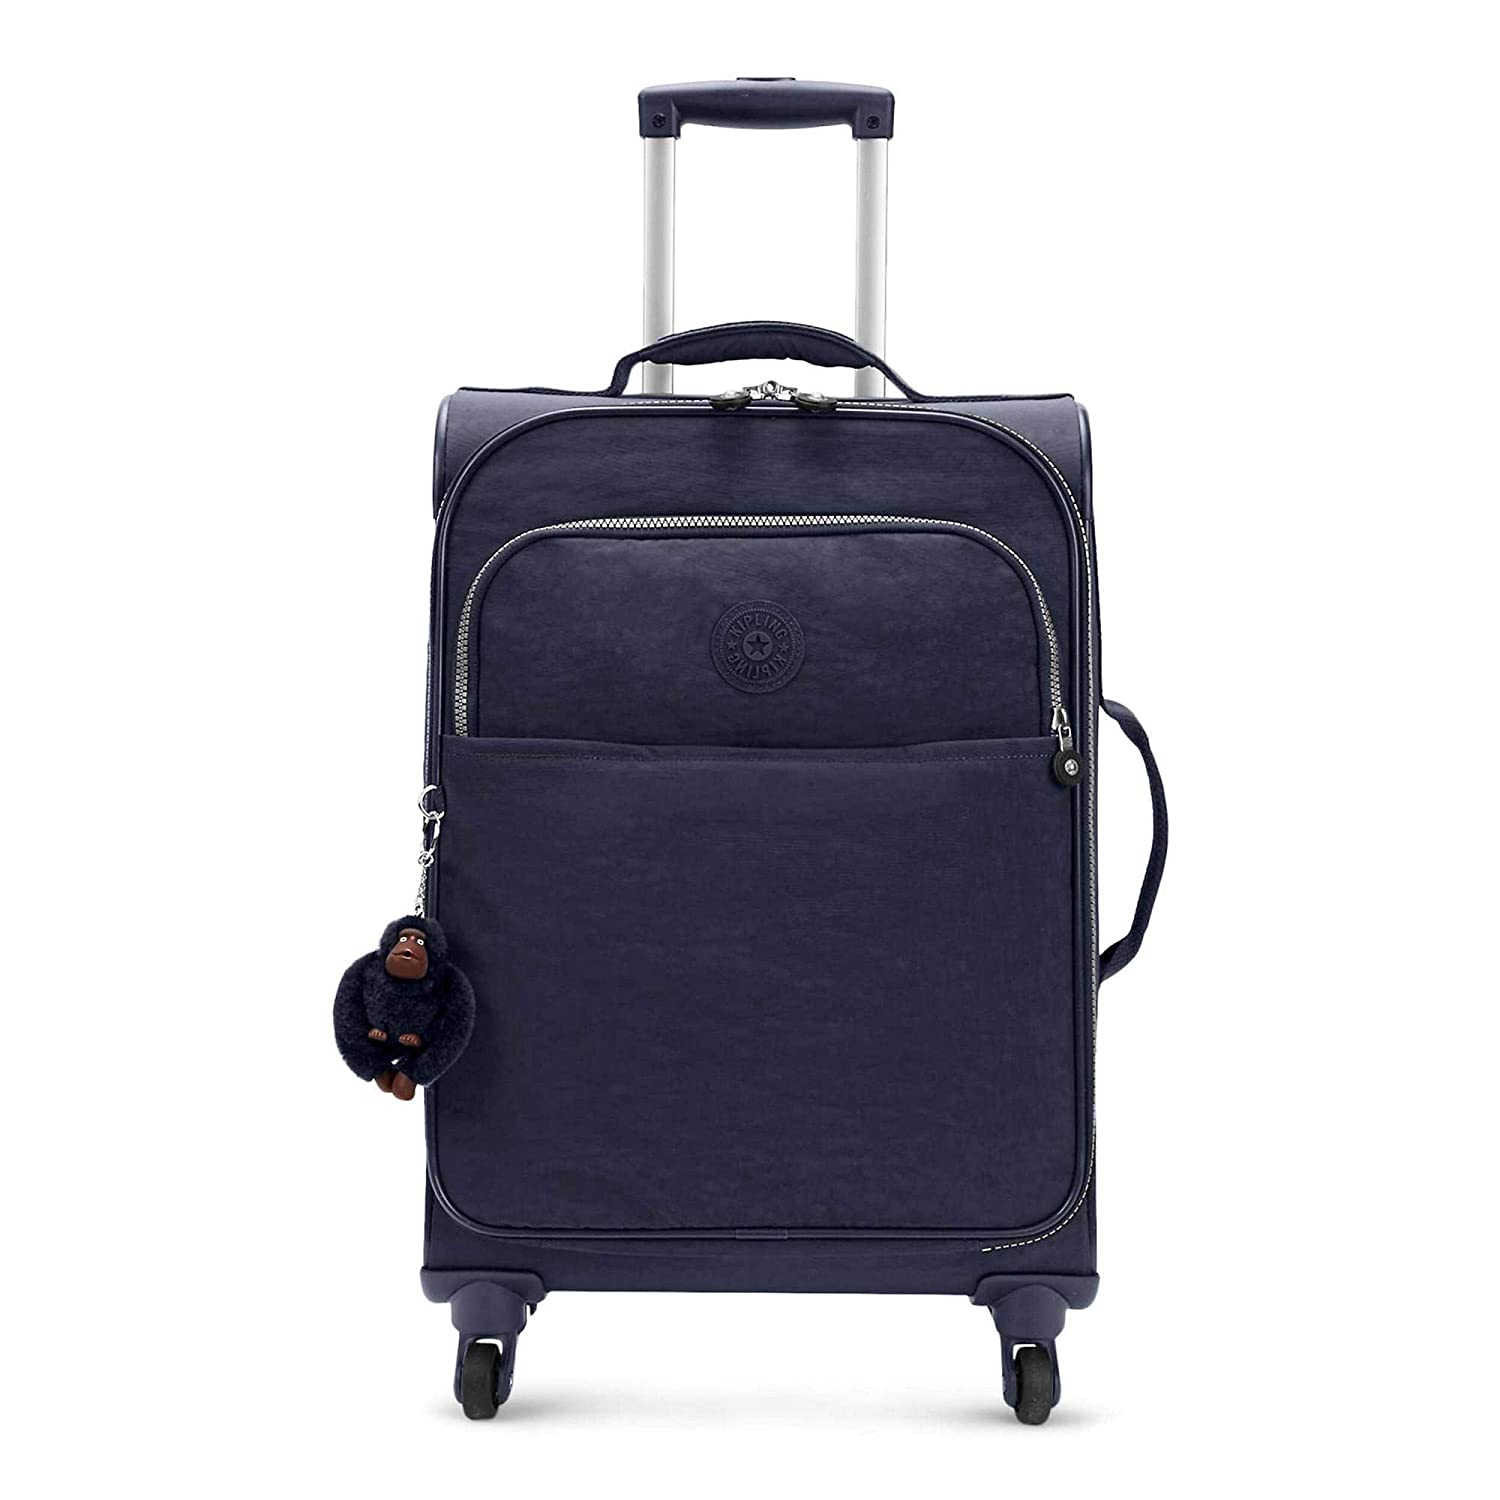 Kipling Parker Small Carry-On Rolling Luggage